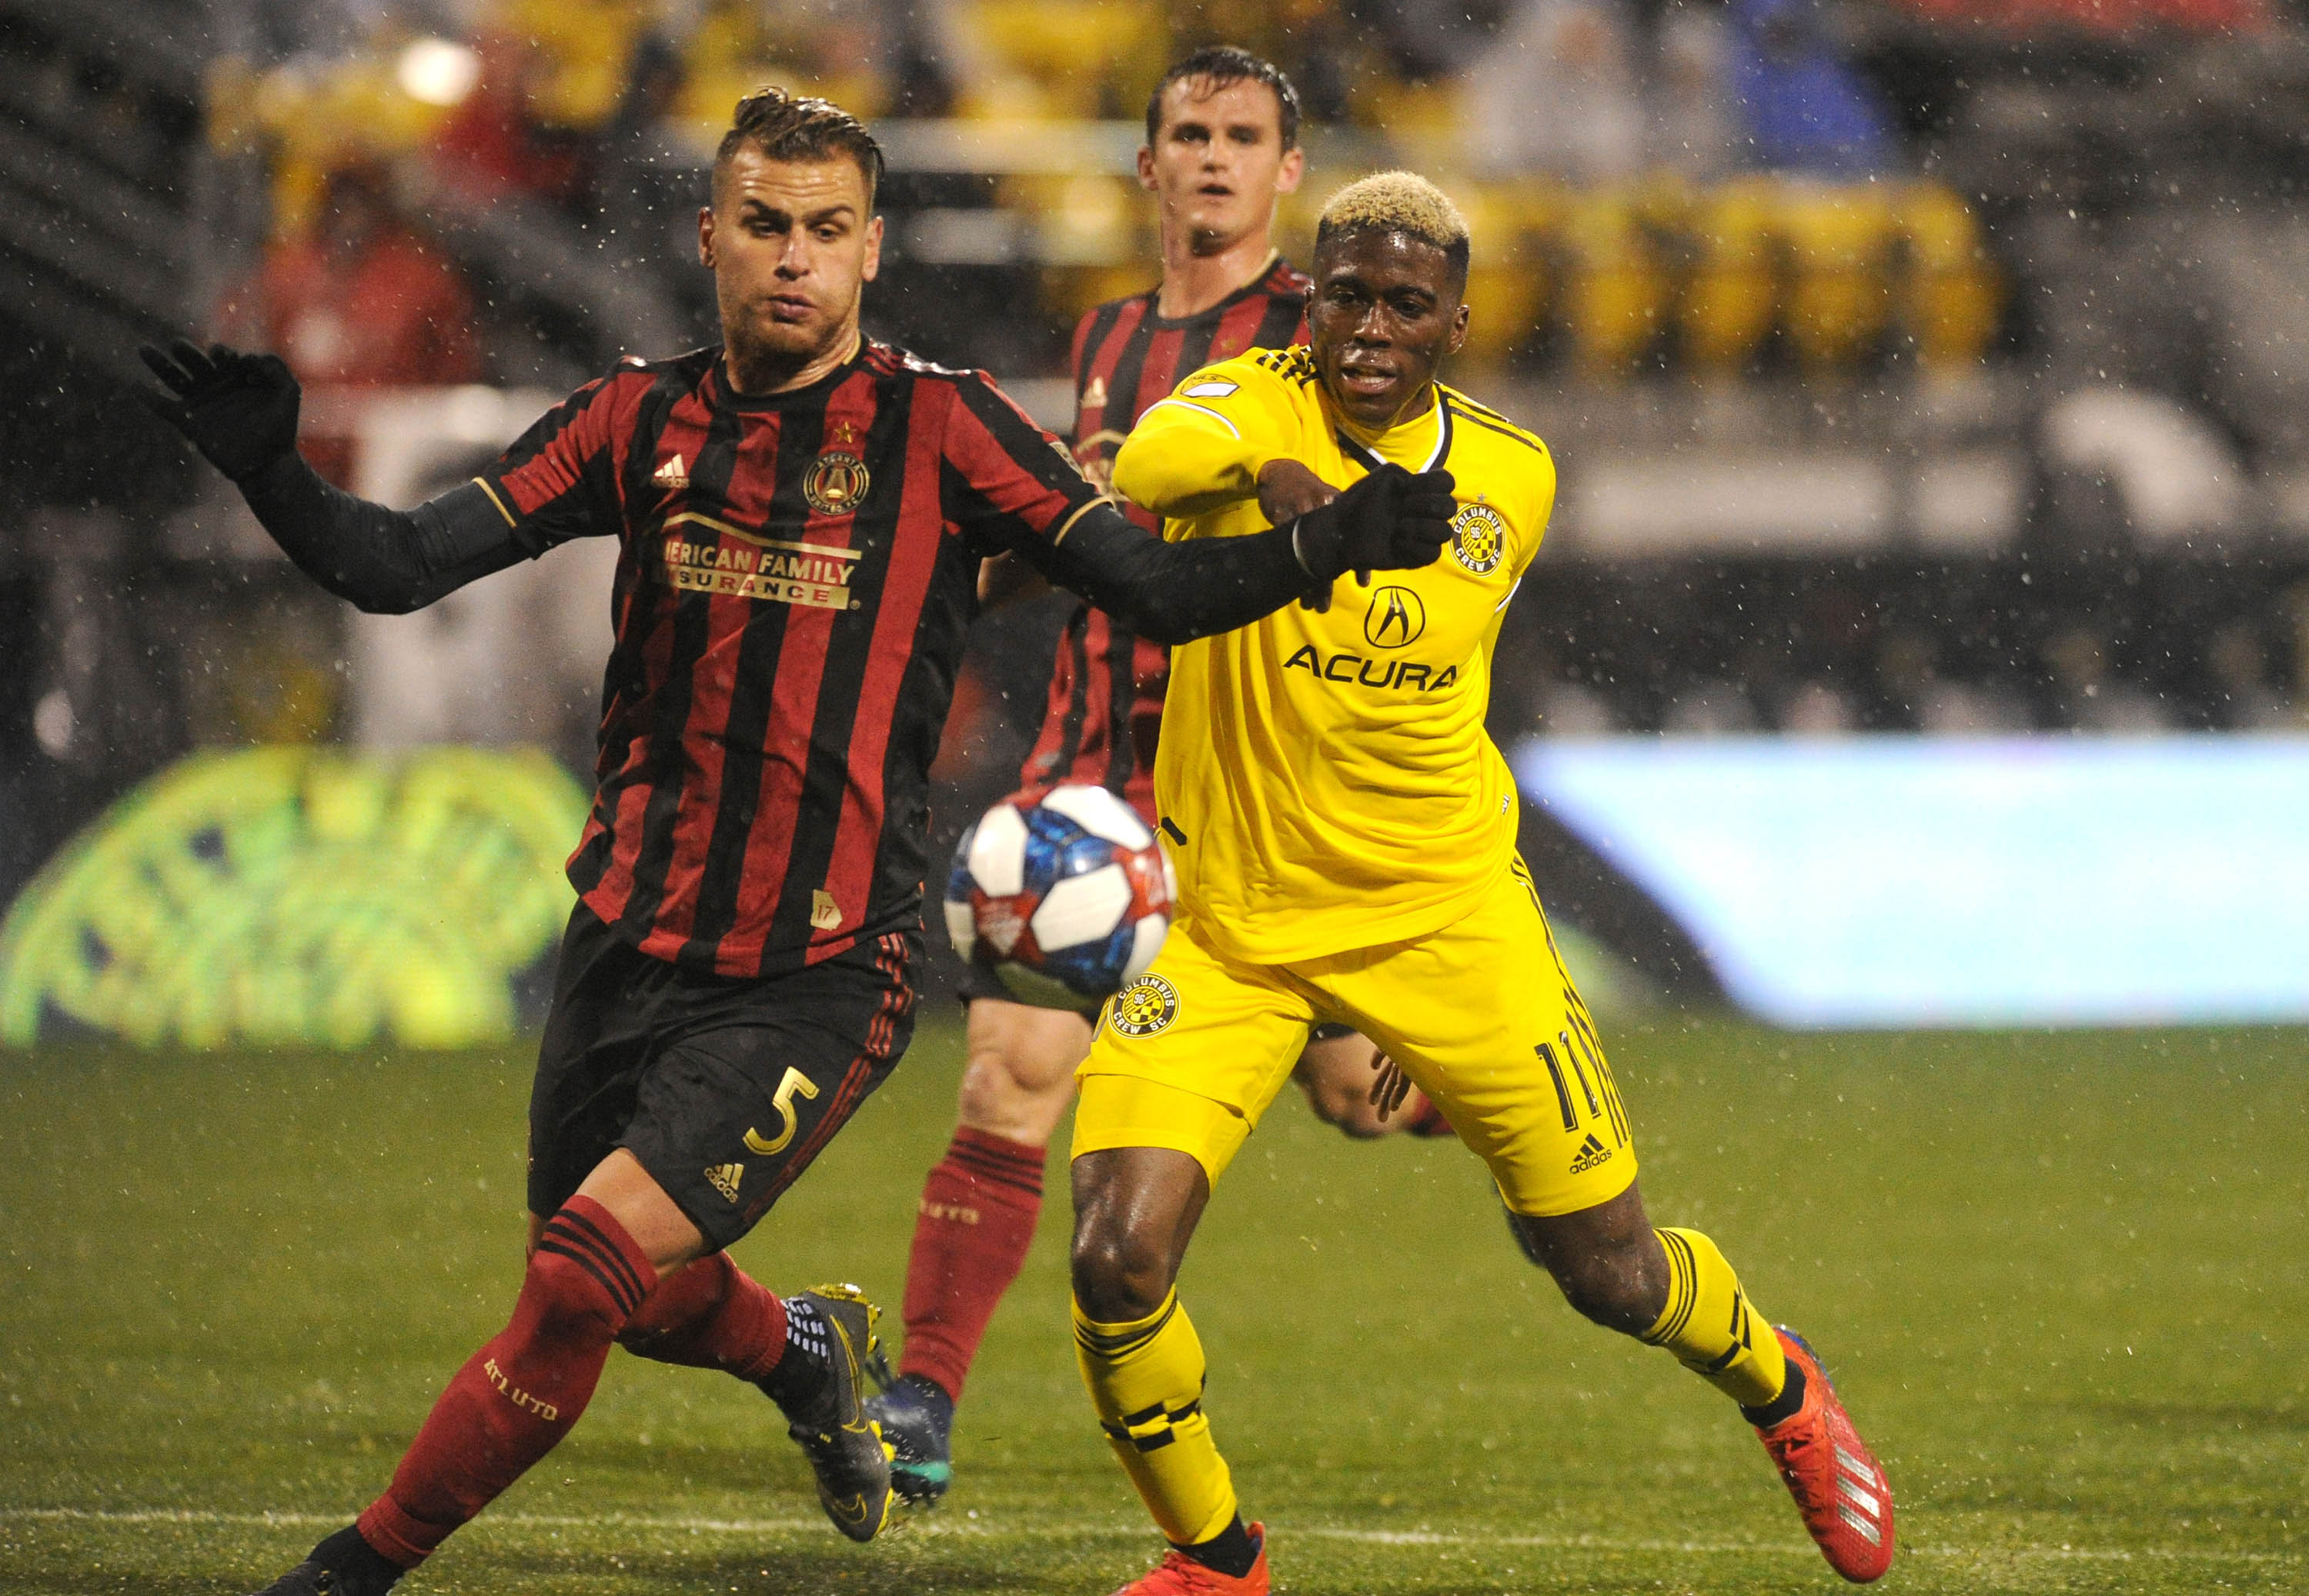 dd2588bdc72c One thought on Atlanta United sinking in Columbus